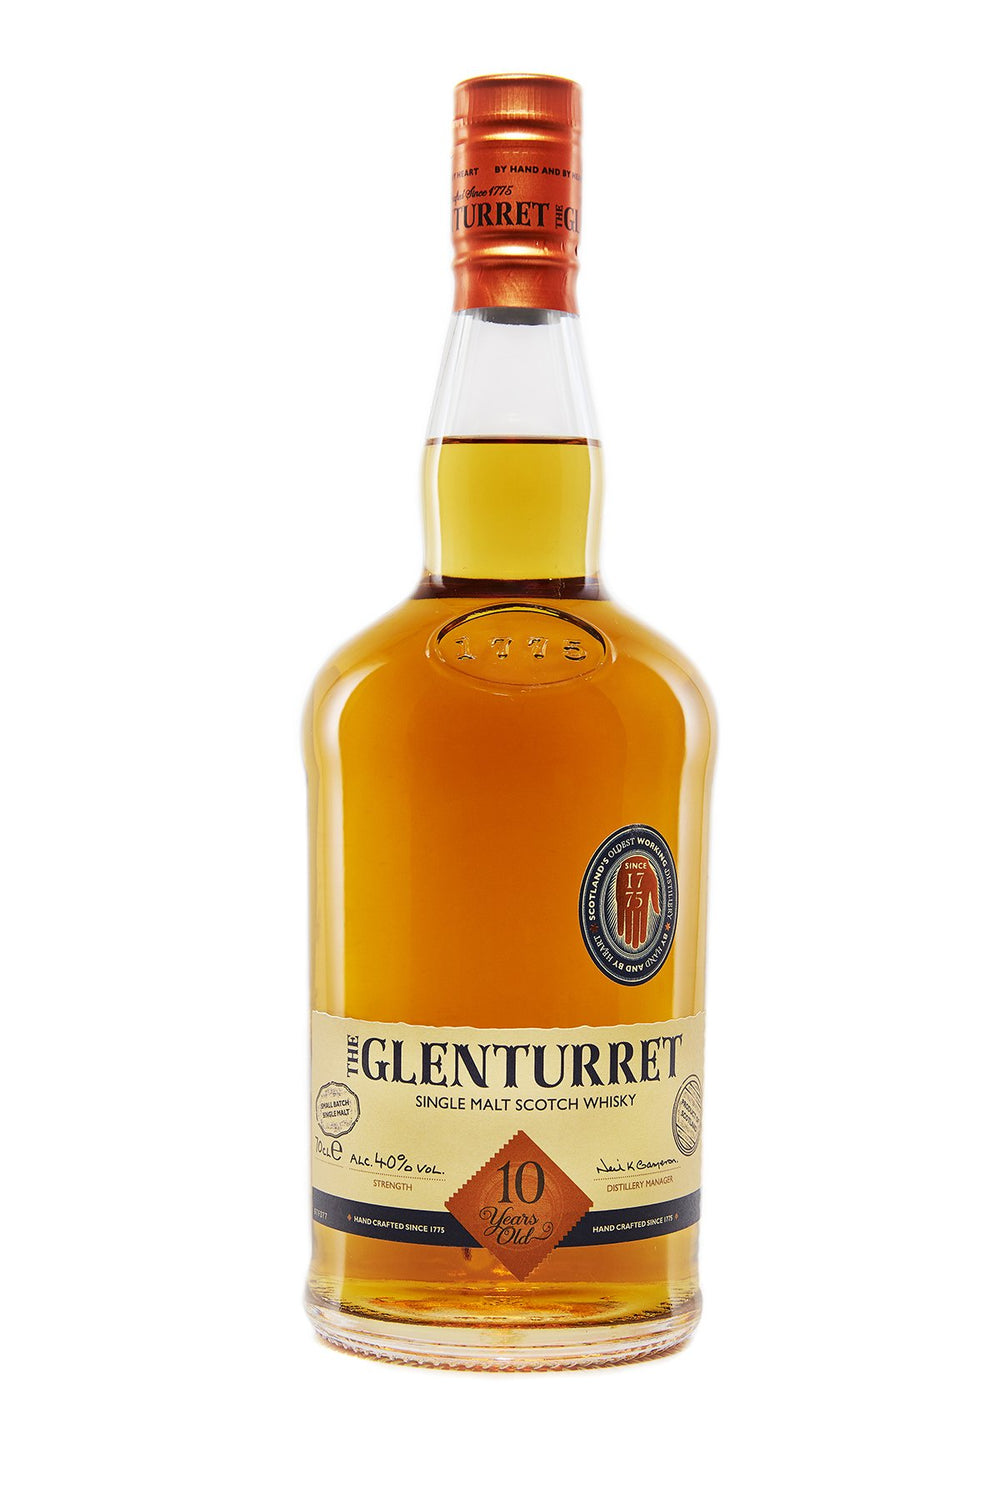 The Glenturret 10 Years Old